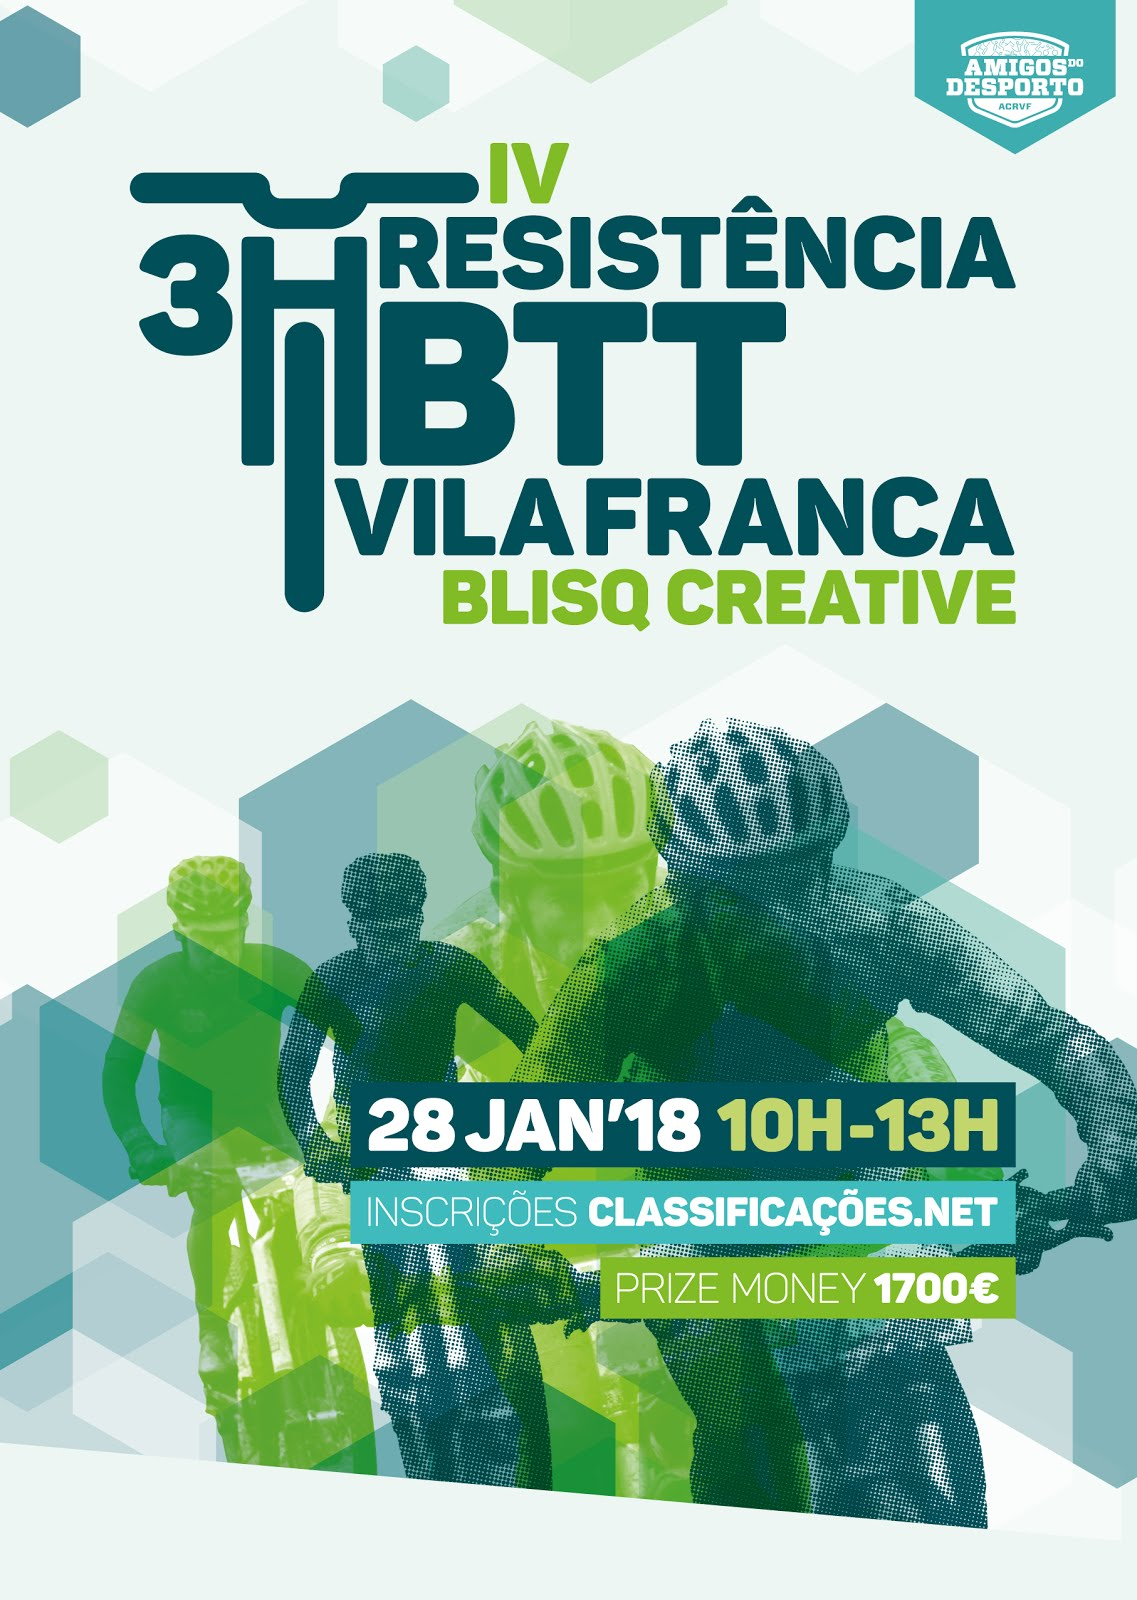 28JAN * VILA FRANCA